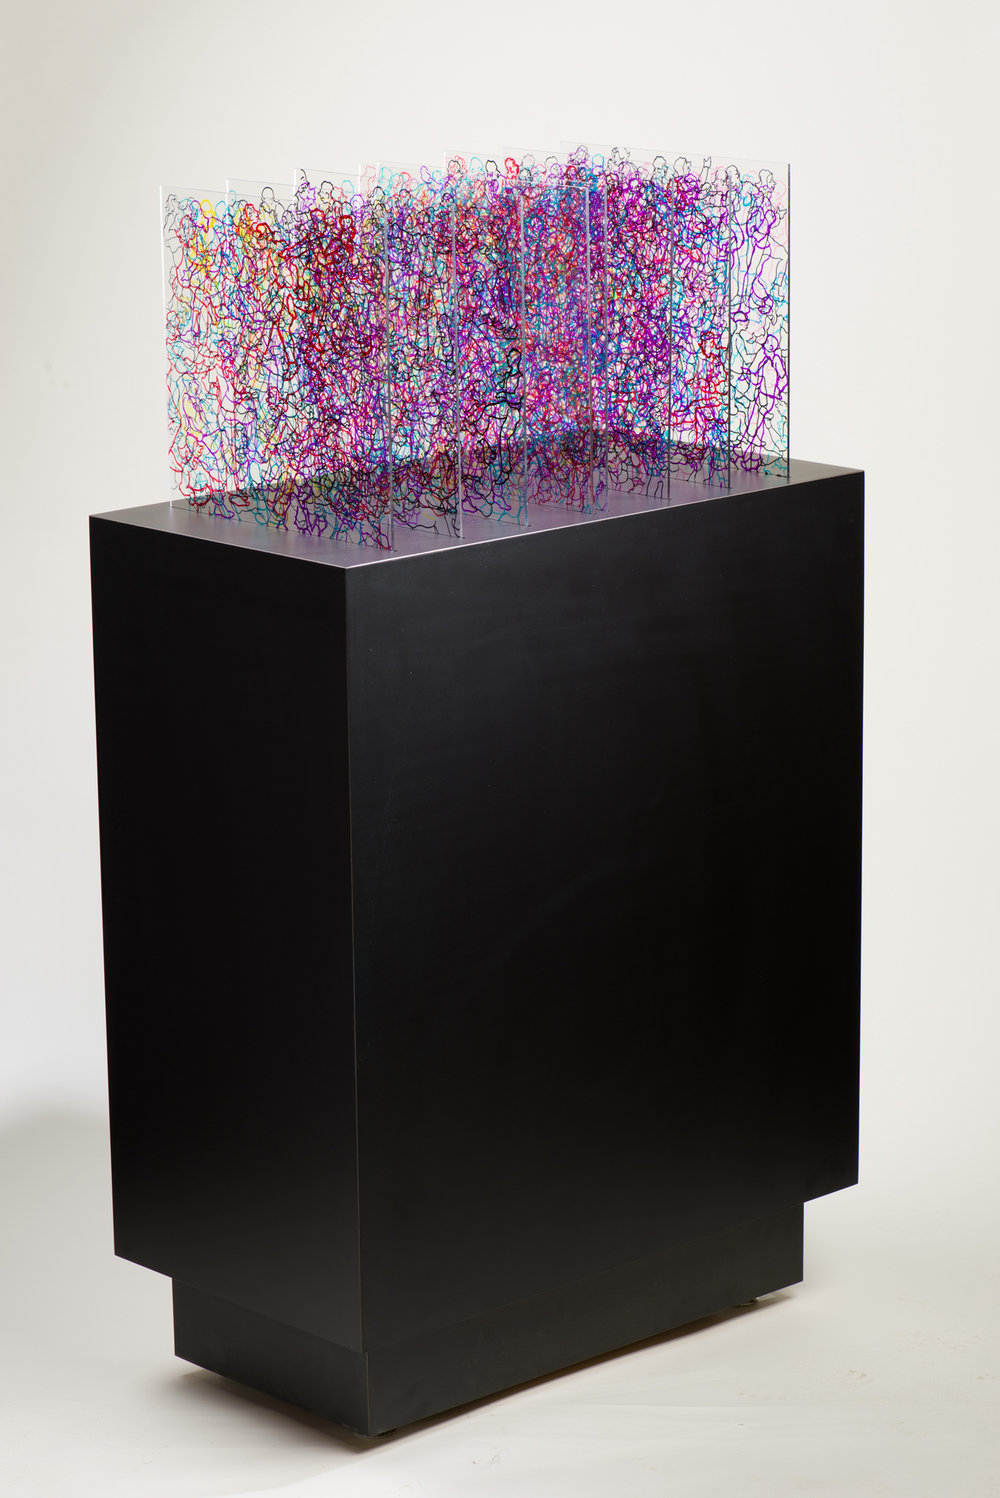 "CLEARLY INTERACTING PEDESTAL  #3102 Acrylic Panels with People Drawing in Colored Krink Markers Clear Panels fit into Slots of Solid Pedestal 29 1/2"" x 14"" x 32""  $4000.00 Studio"